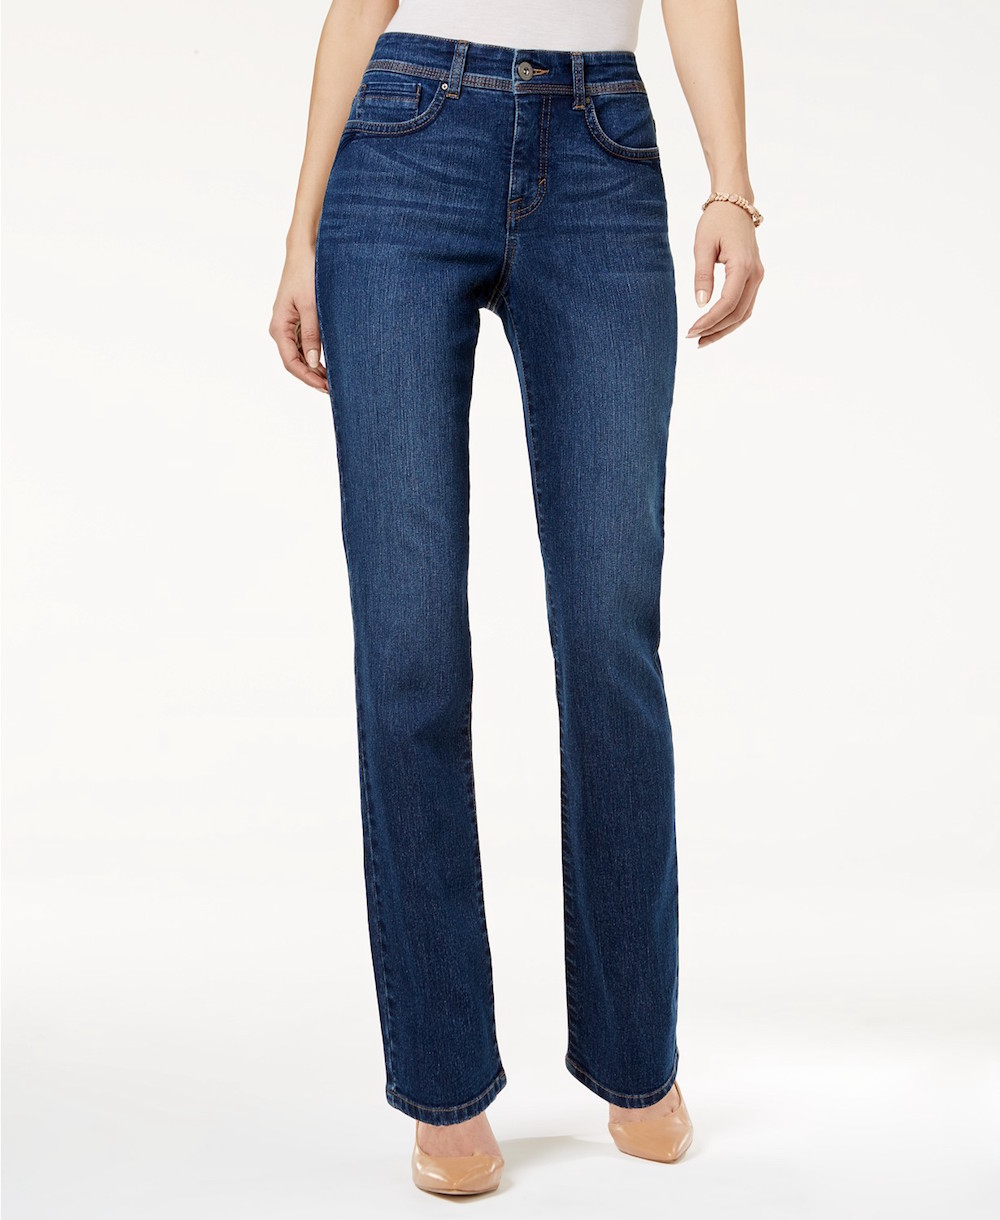 63281854187 Best High-Waisted Jeans for Every Body Type - theFashionSpot